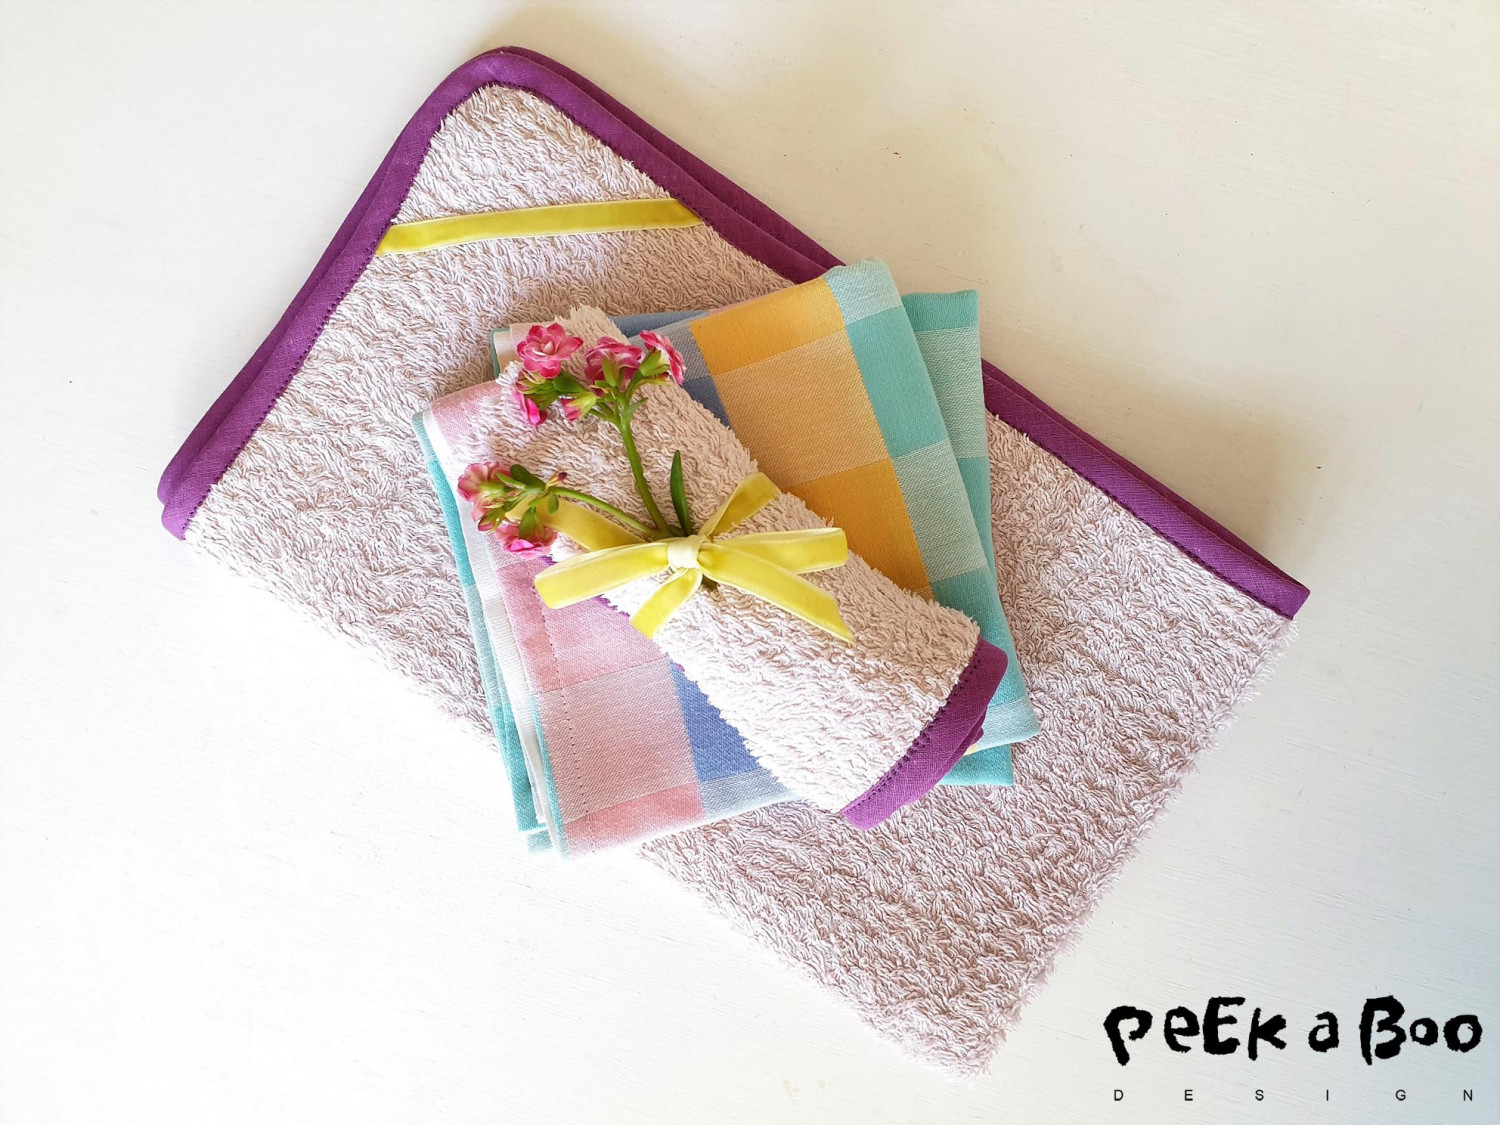 Dish cloth and guest towel made of old towels. Use them as a sustainable hostess gift.